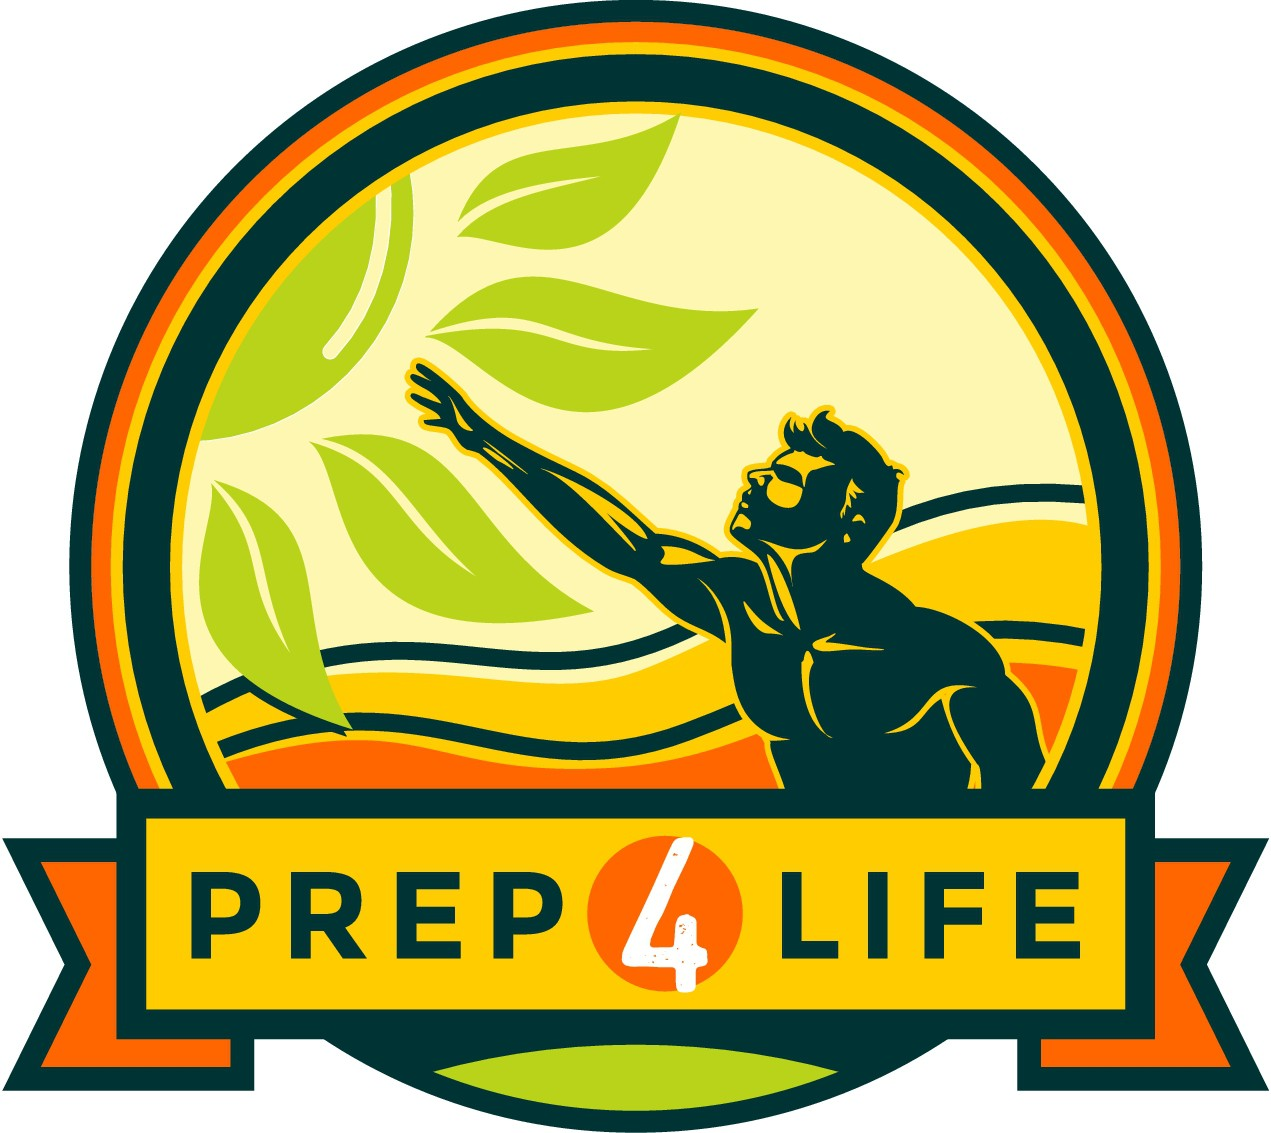 Prep4Life needs a logo for private labeled goods